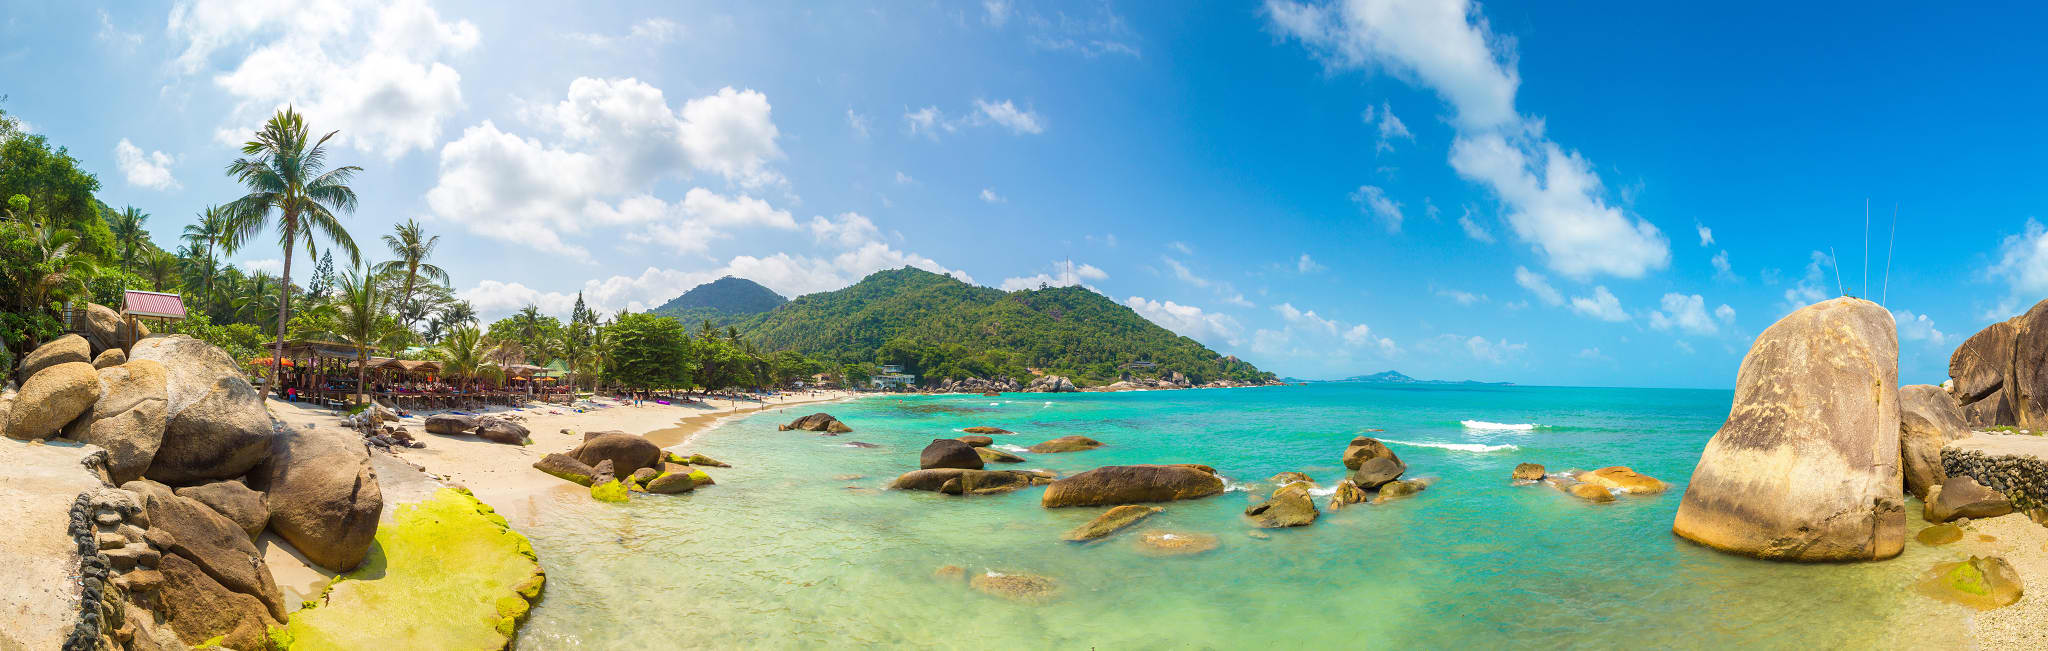 Thailand coastline with light blue waters and white sand